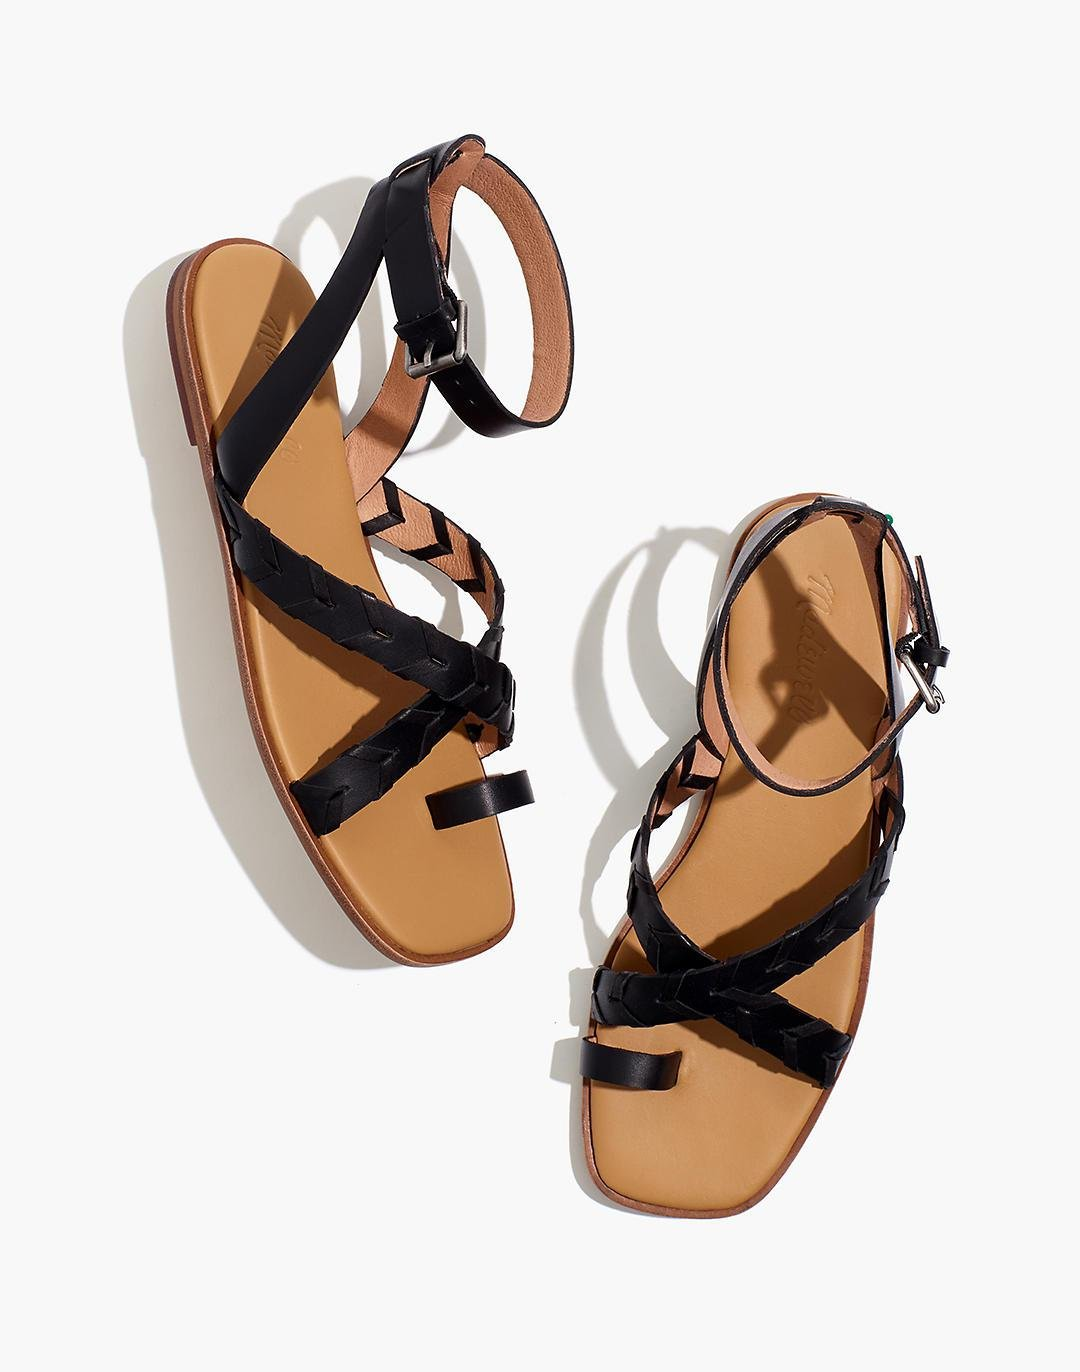 The Cassia Whipstitch Sandal